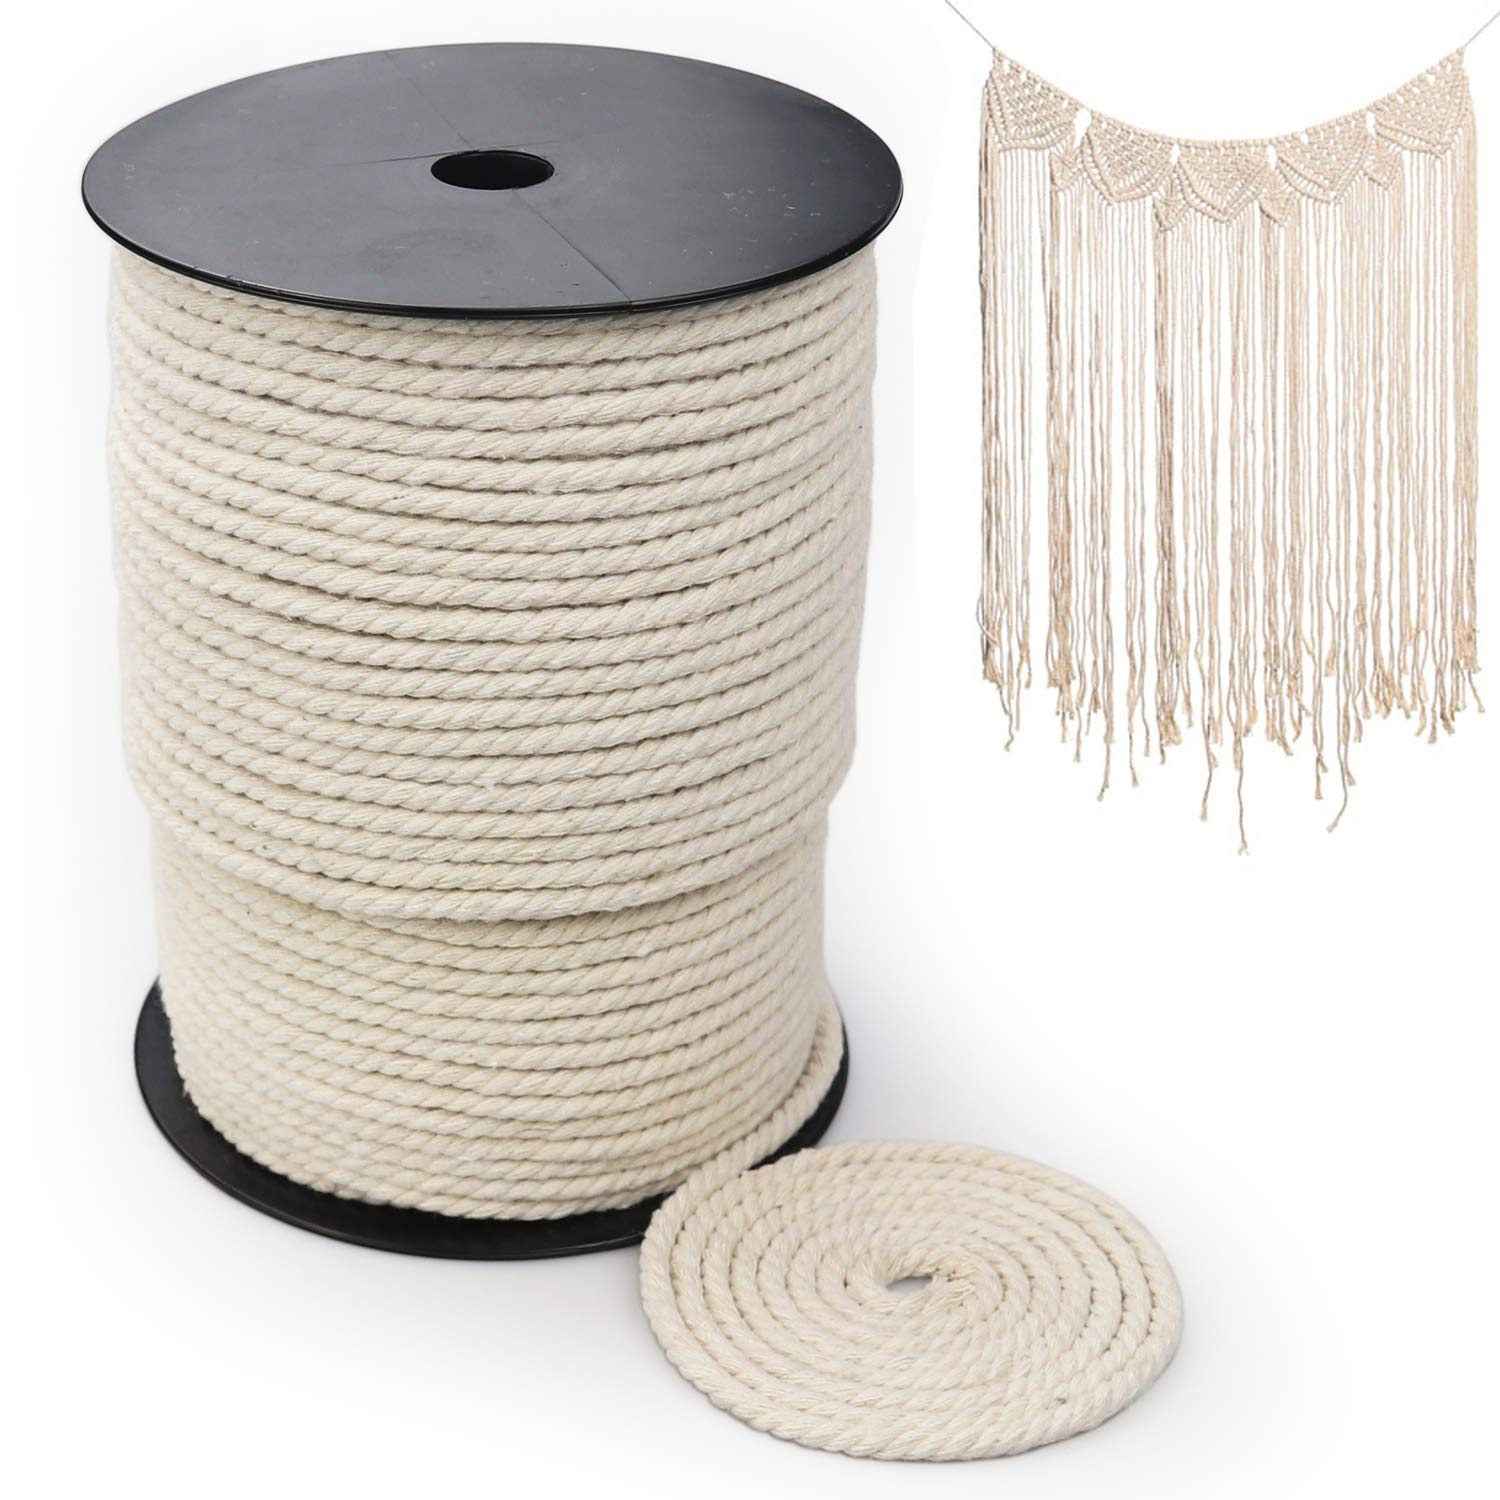 100/% Natural Macrame Rope Plant Hangers Macrame Cord 4mm x 328Yards Decorative Projects Soft Undyed Cotton Rope 3 Strand Twisted Cotton Cord for Wall Hanging Knitting Crafts